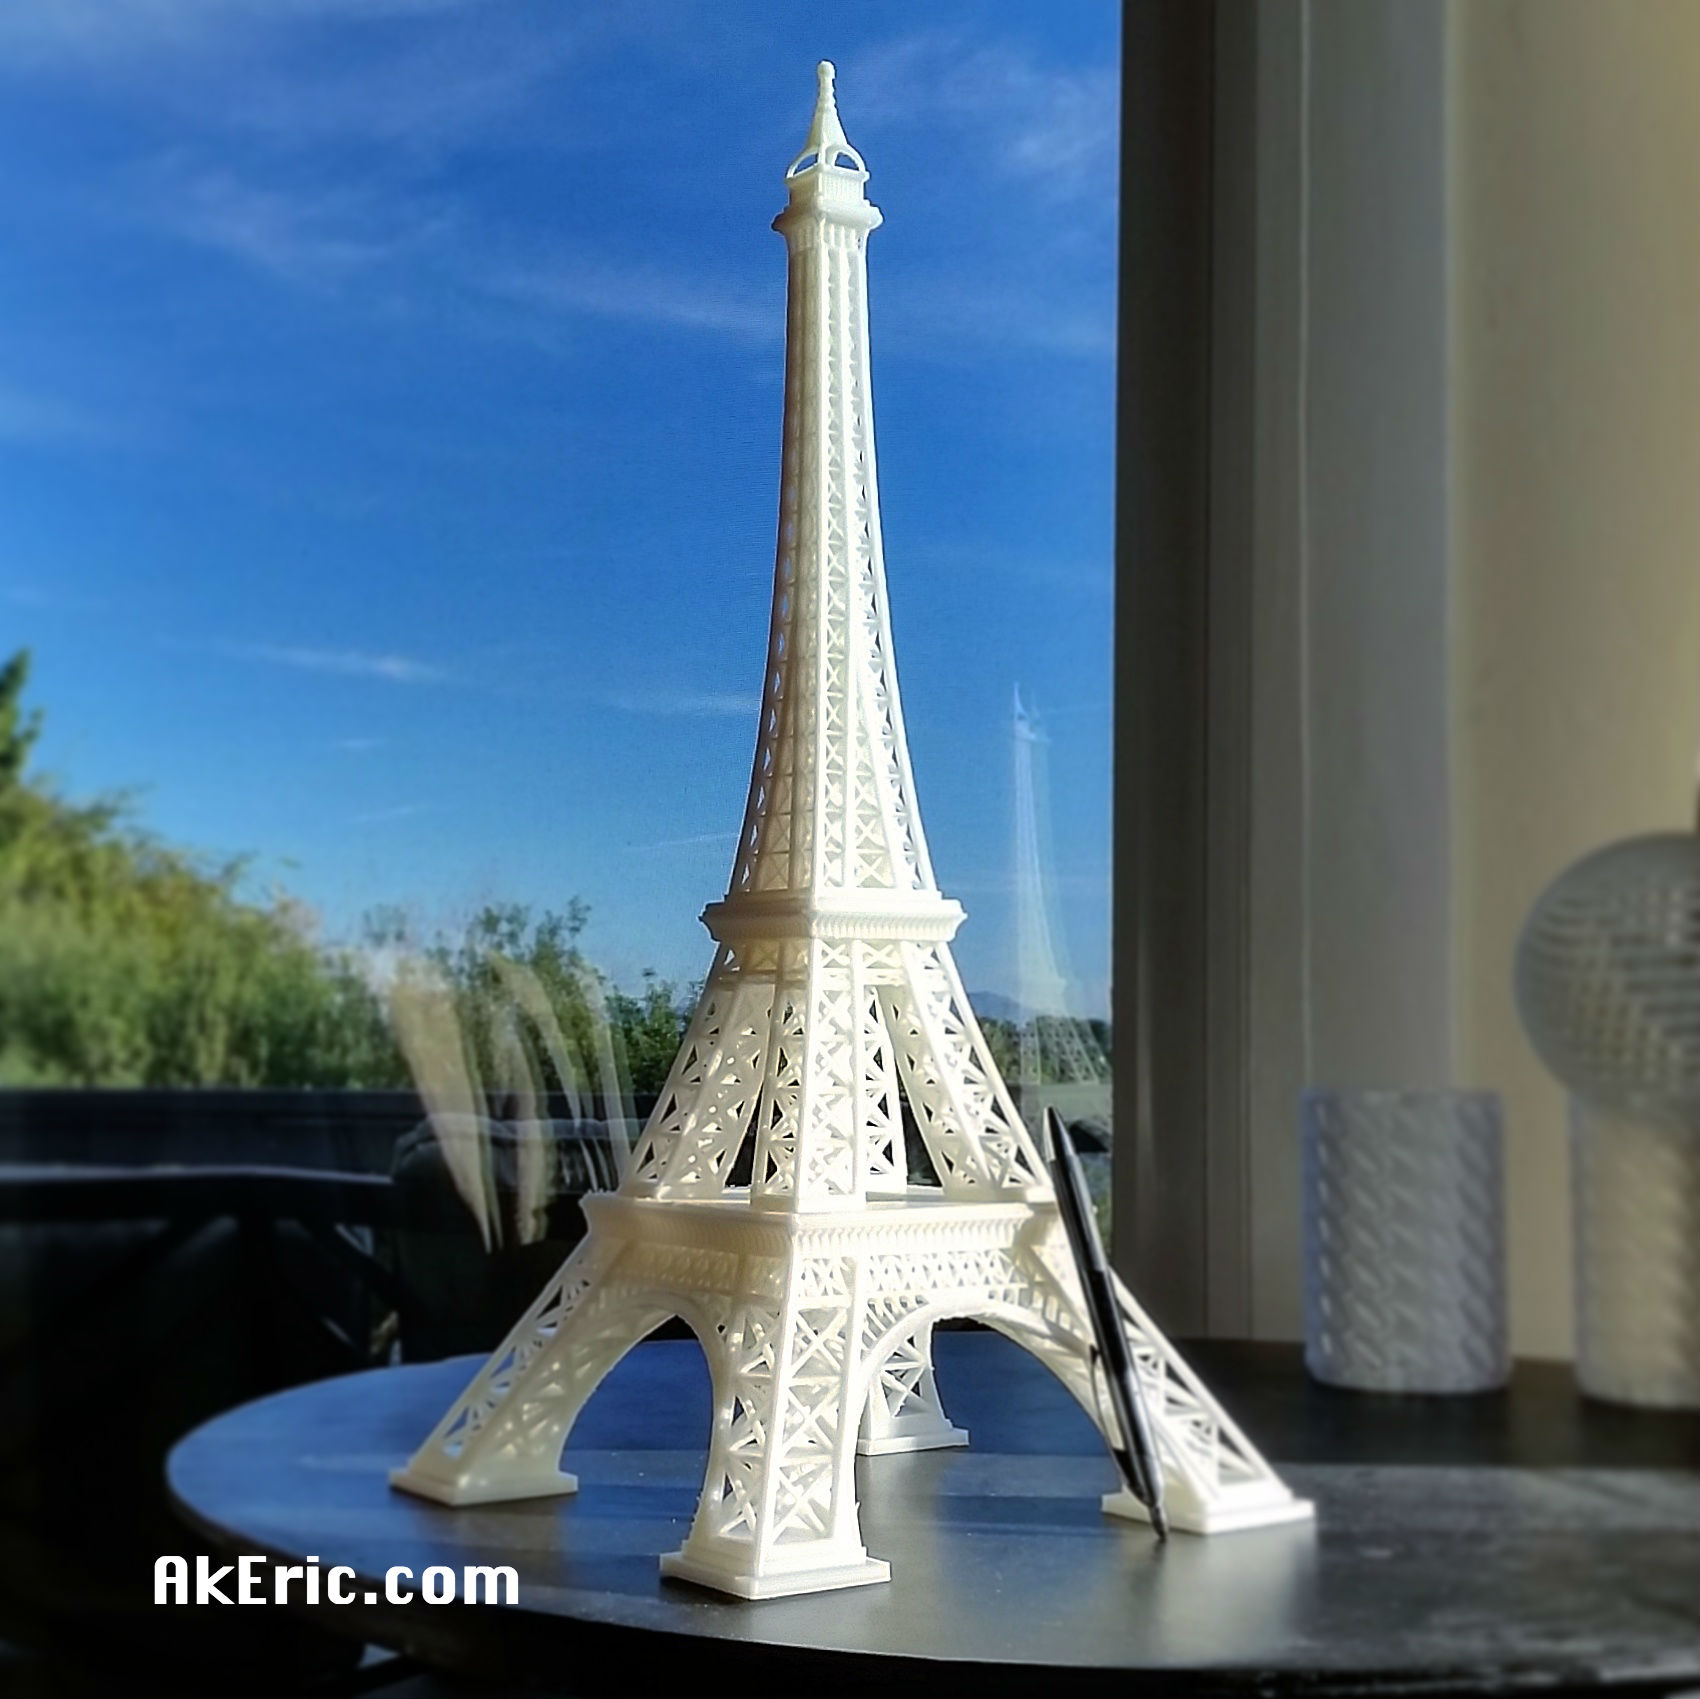 graphic about Printable Pictures of the Eiffel Tower named Clean 3D Print : Eiffel Tower AK Eric